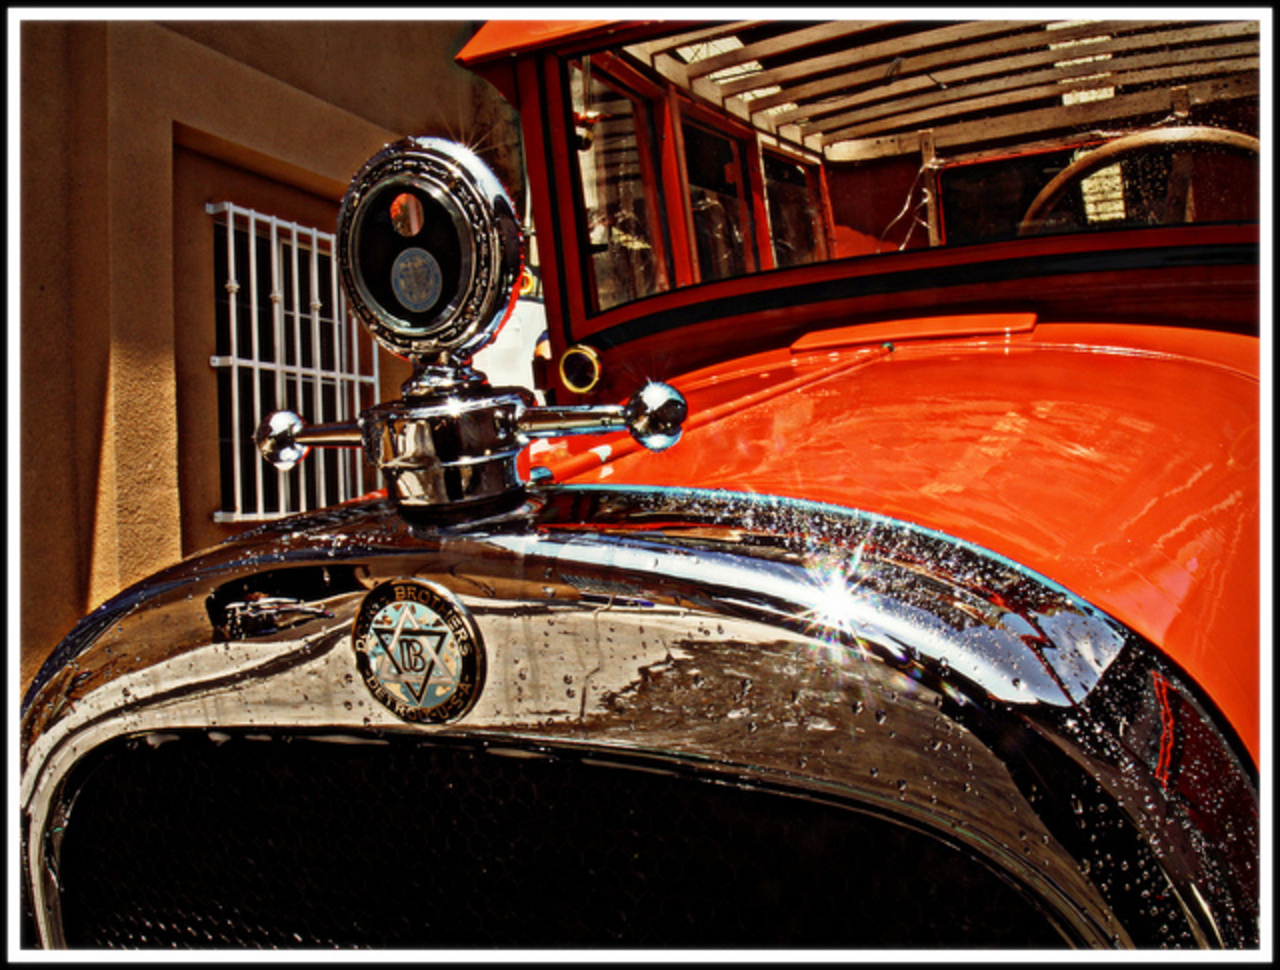 Flickr: The 1926 Cars, Bikes, Trains and Planes Pool